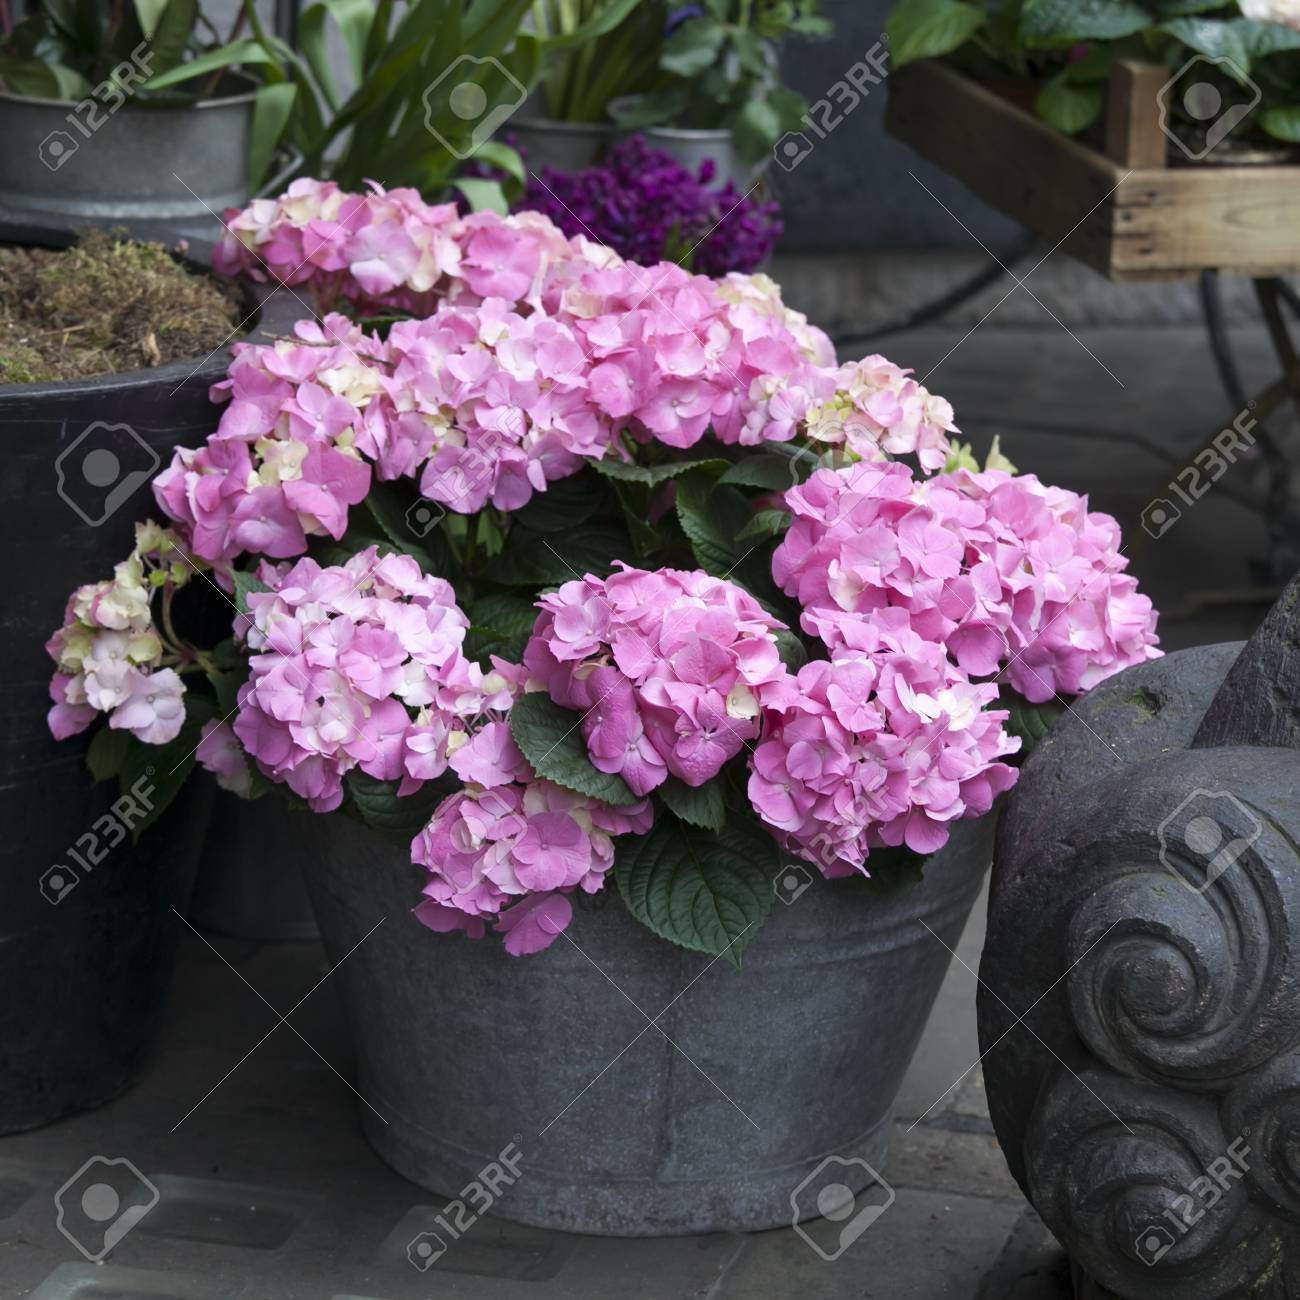 Bunch Of Hortensia Pink Flowers In A Decorative Vase Stock Photo